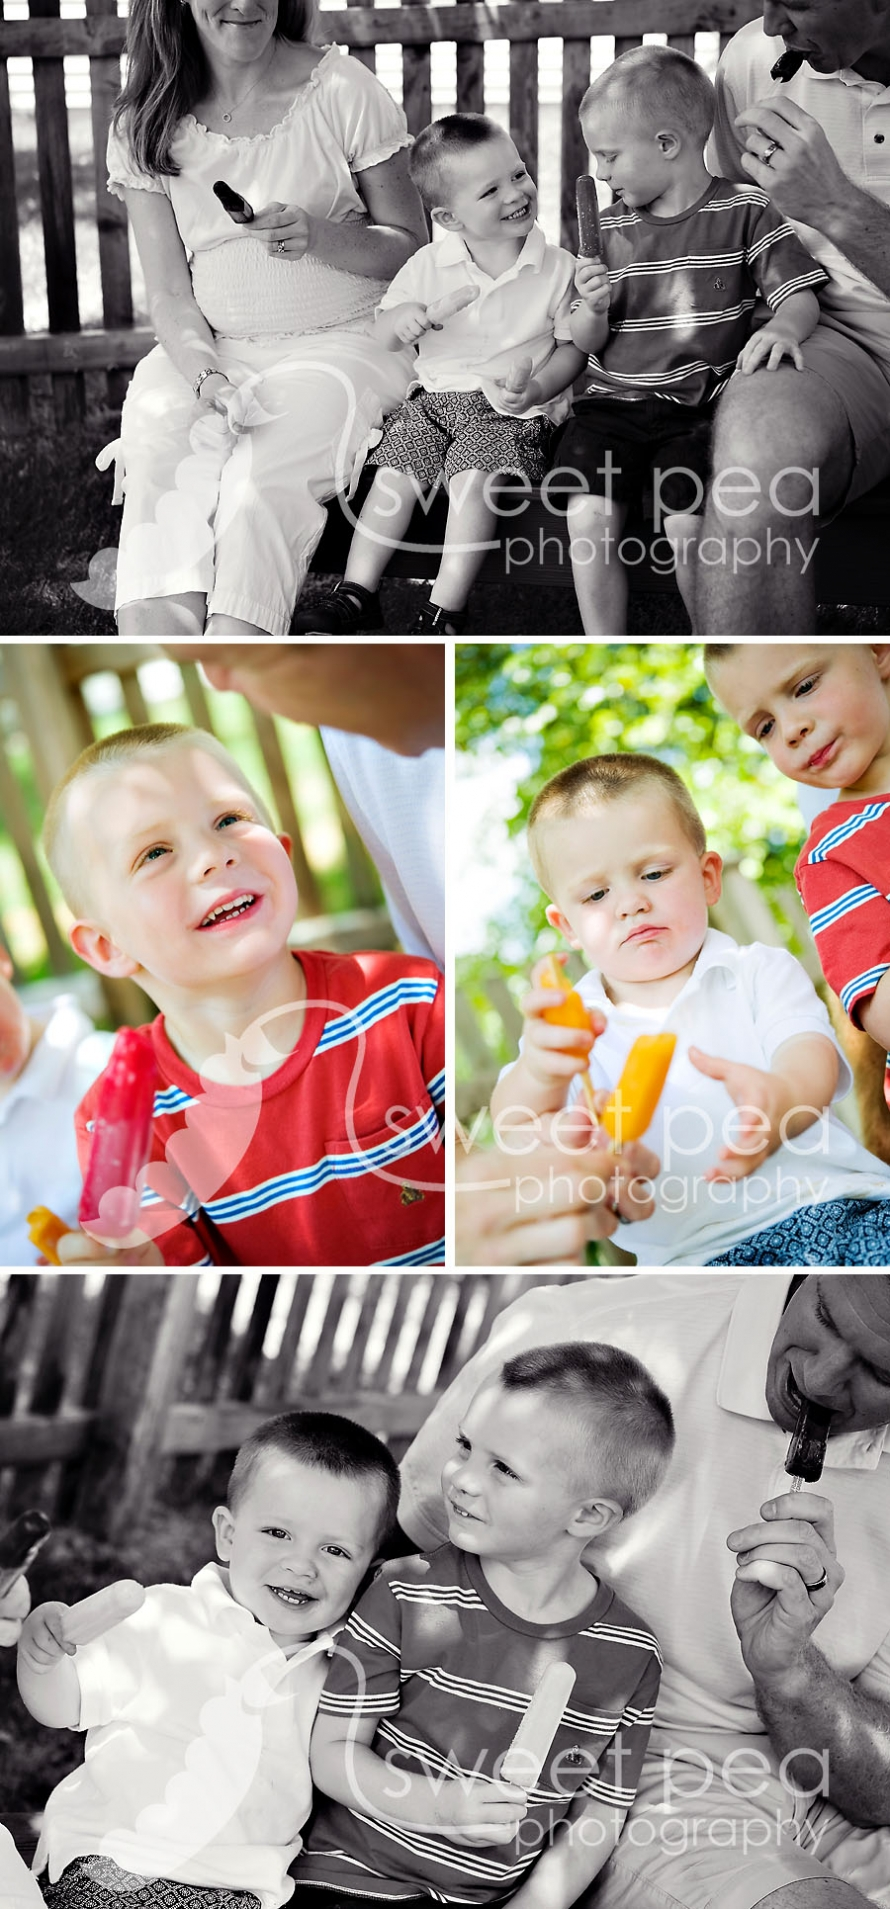 champaign_family_photographer072110